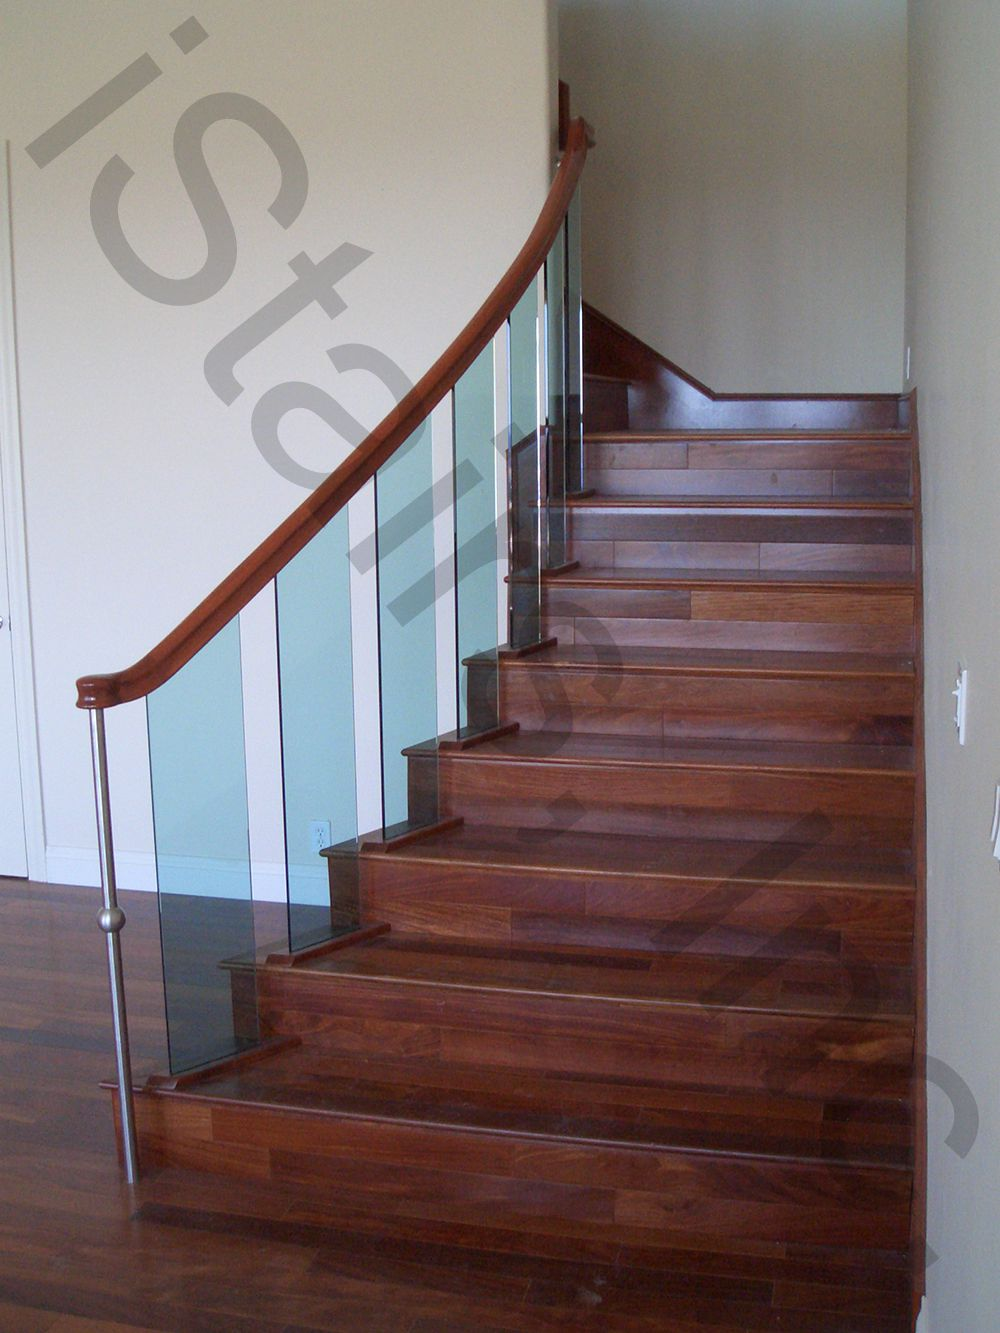 Cherry w/stainless steel newels & glass balusters over the post